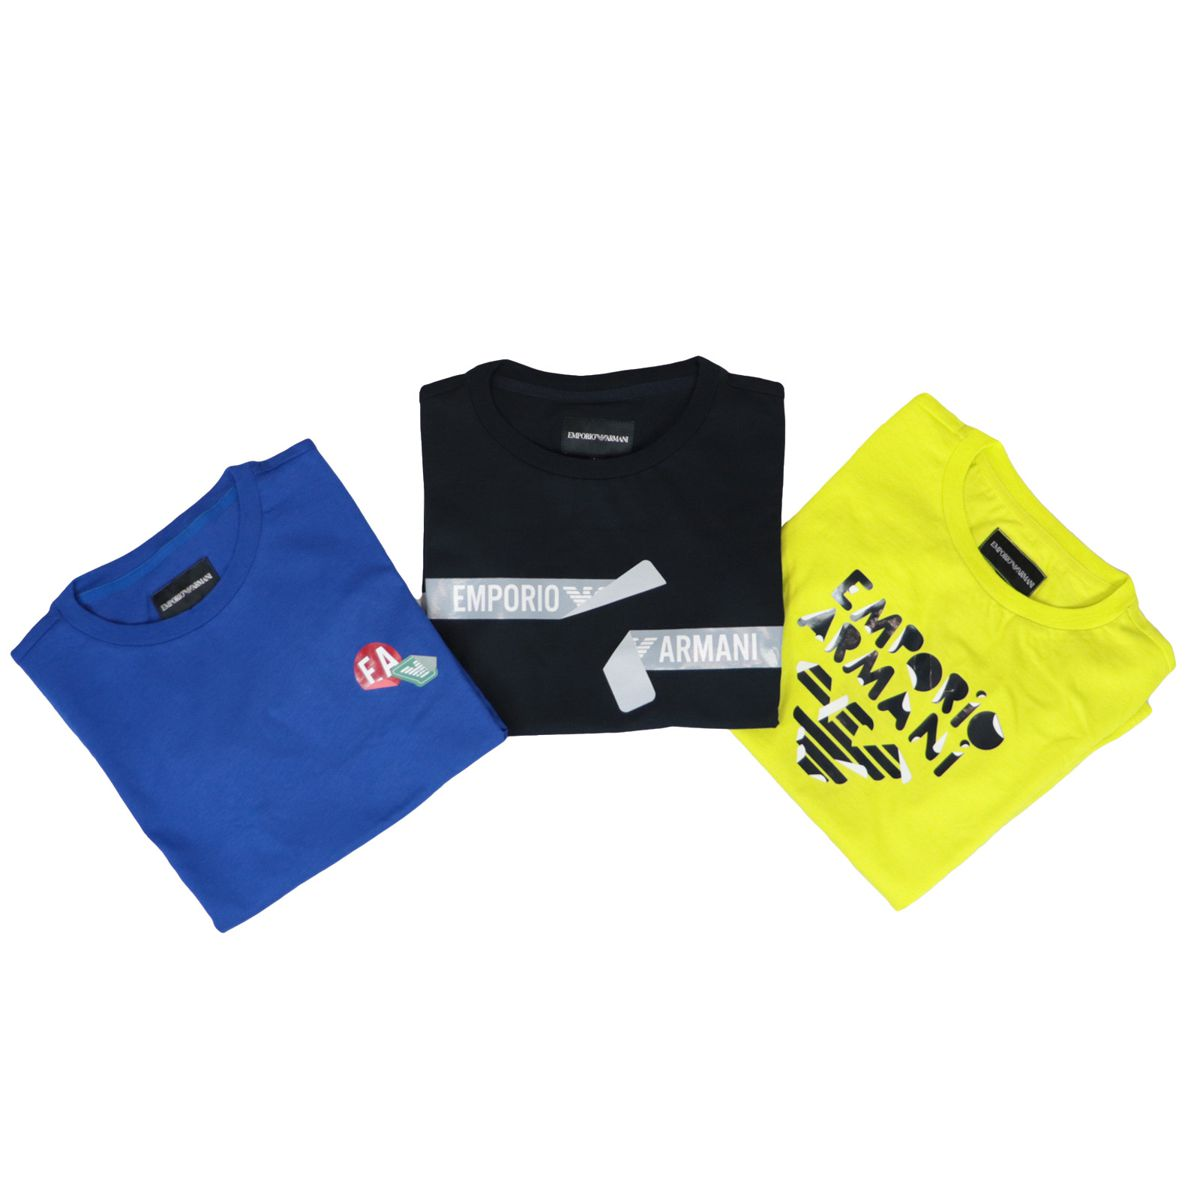 Set of cotton t-shirts with contrasting prints Yellow blue black Emporio Armani